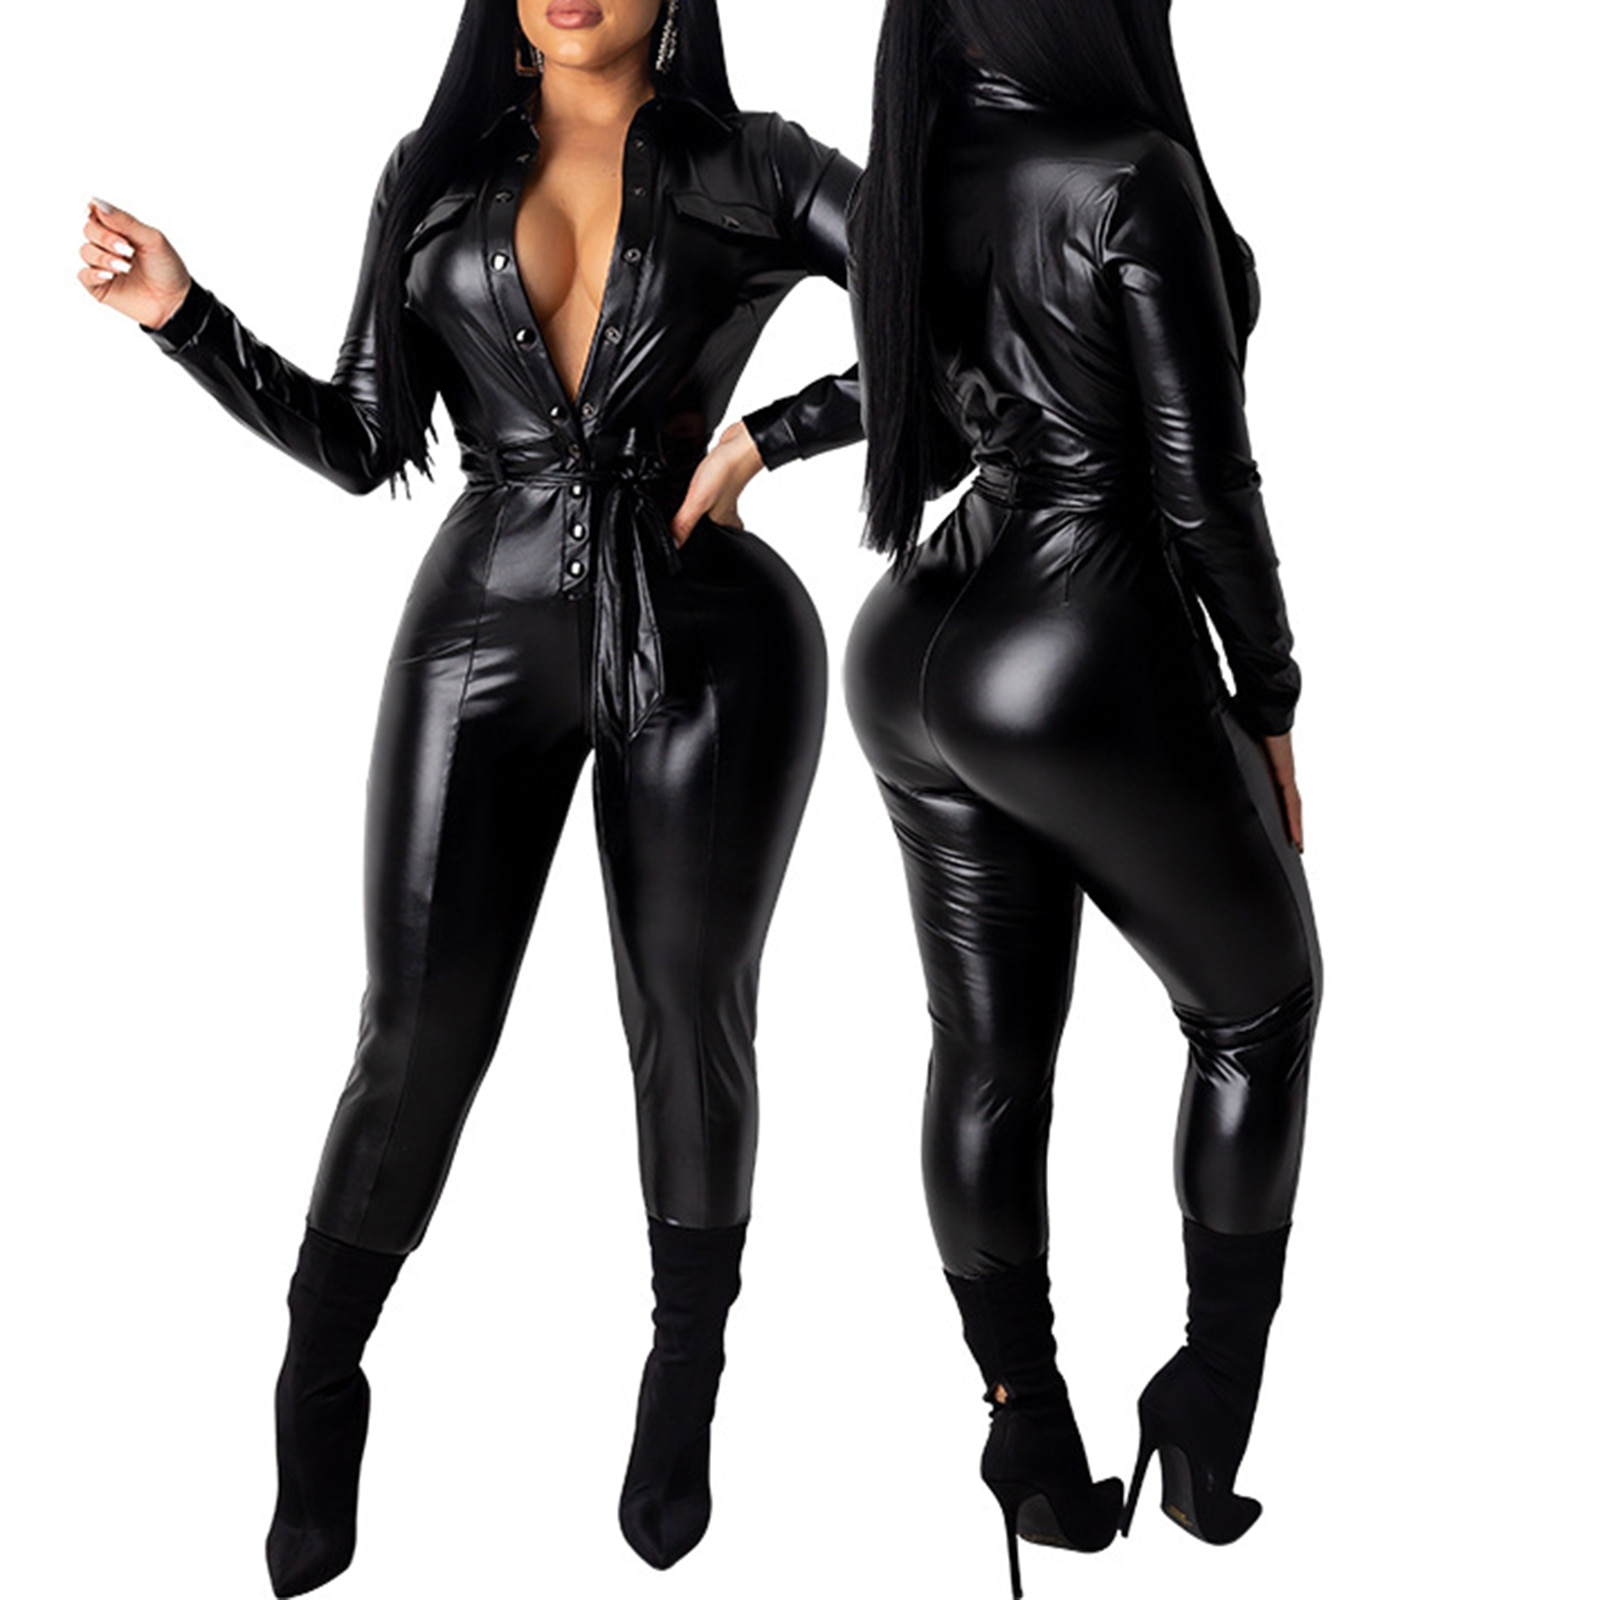 Women Sexy Faux Leather Latex Jumpsuits 2021 Sexy Smooth Wet Look Bodysuit Front Zipper Elastic Black PU Jumpsuit Slim Clubwear